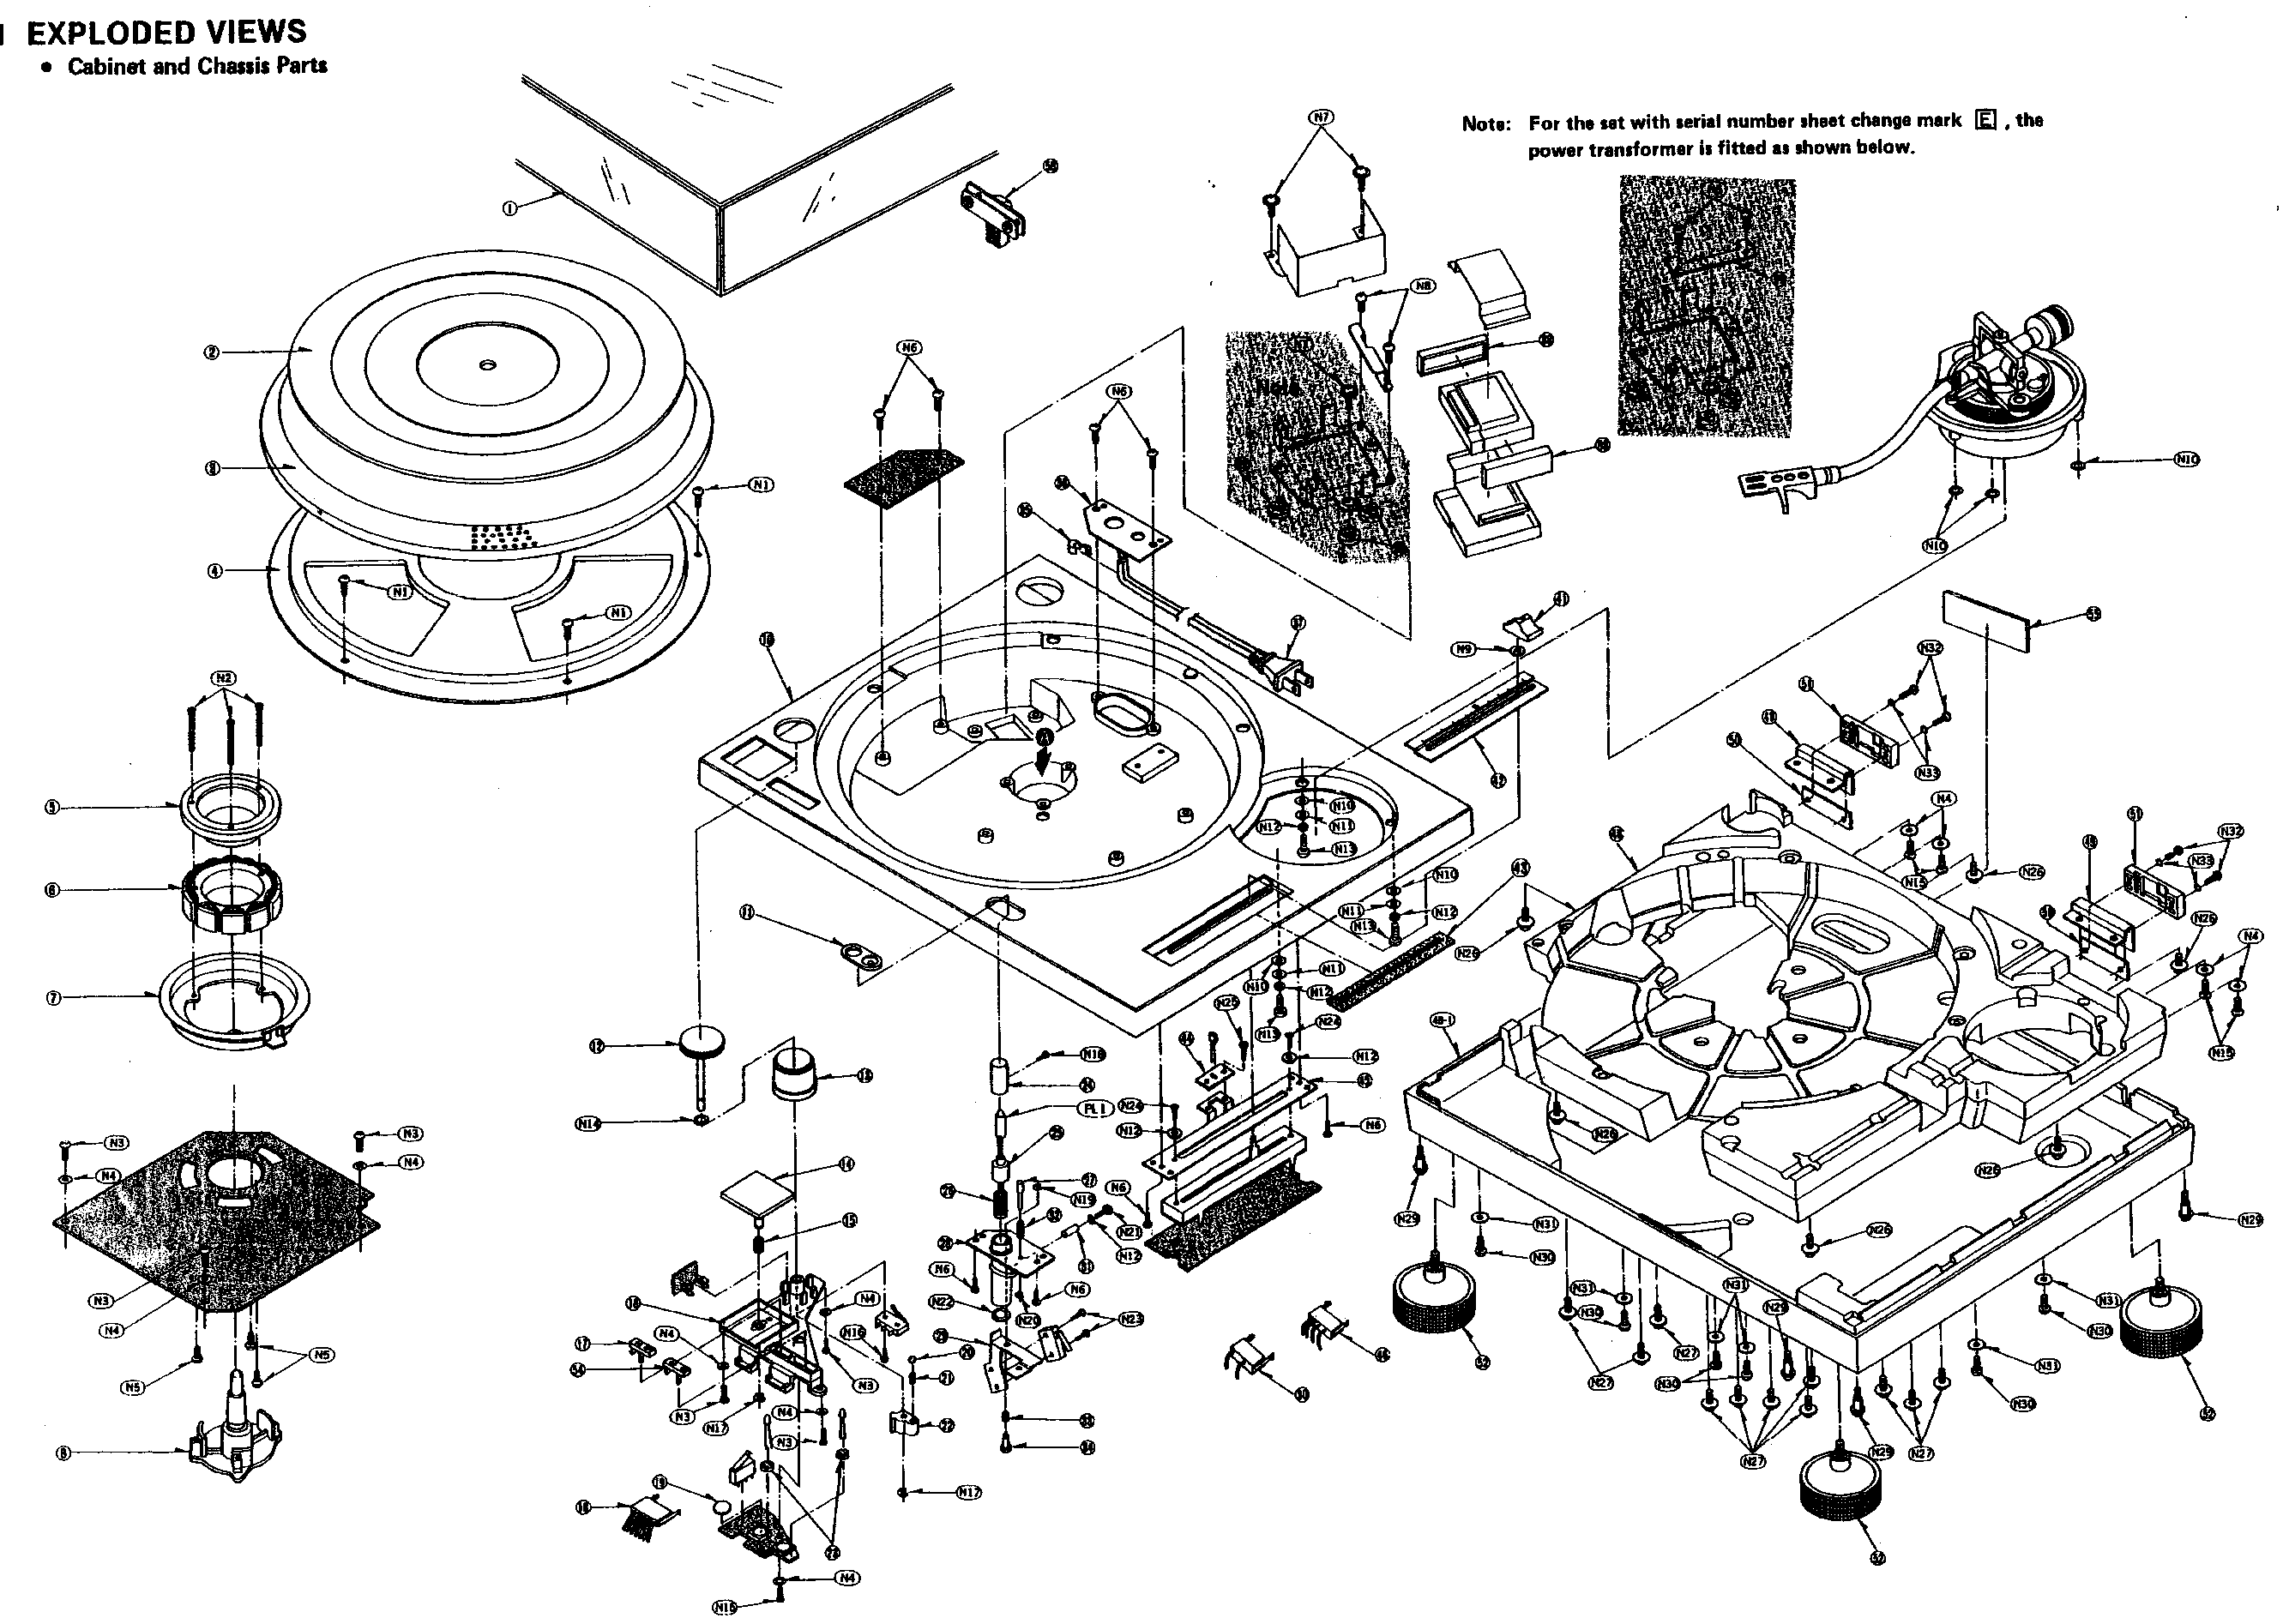 IT'S NOT THAT COMPLICATED Exploded view of a Technics